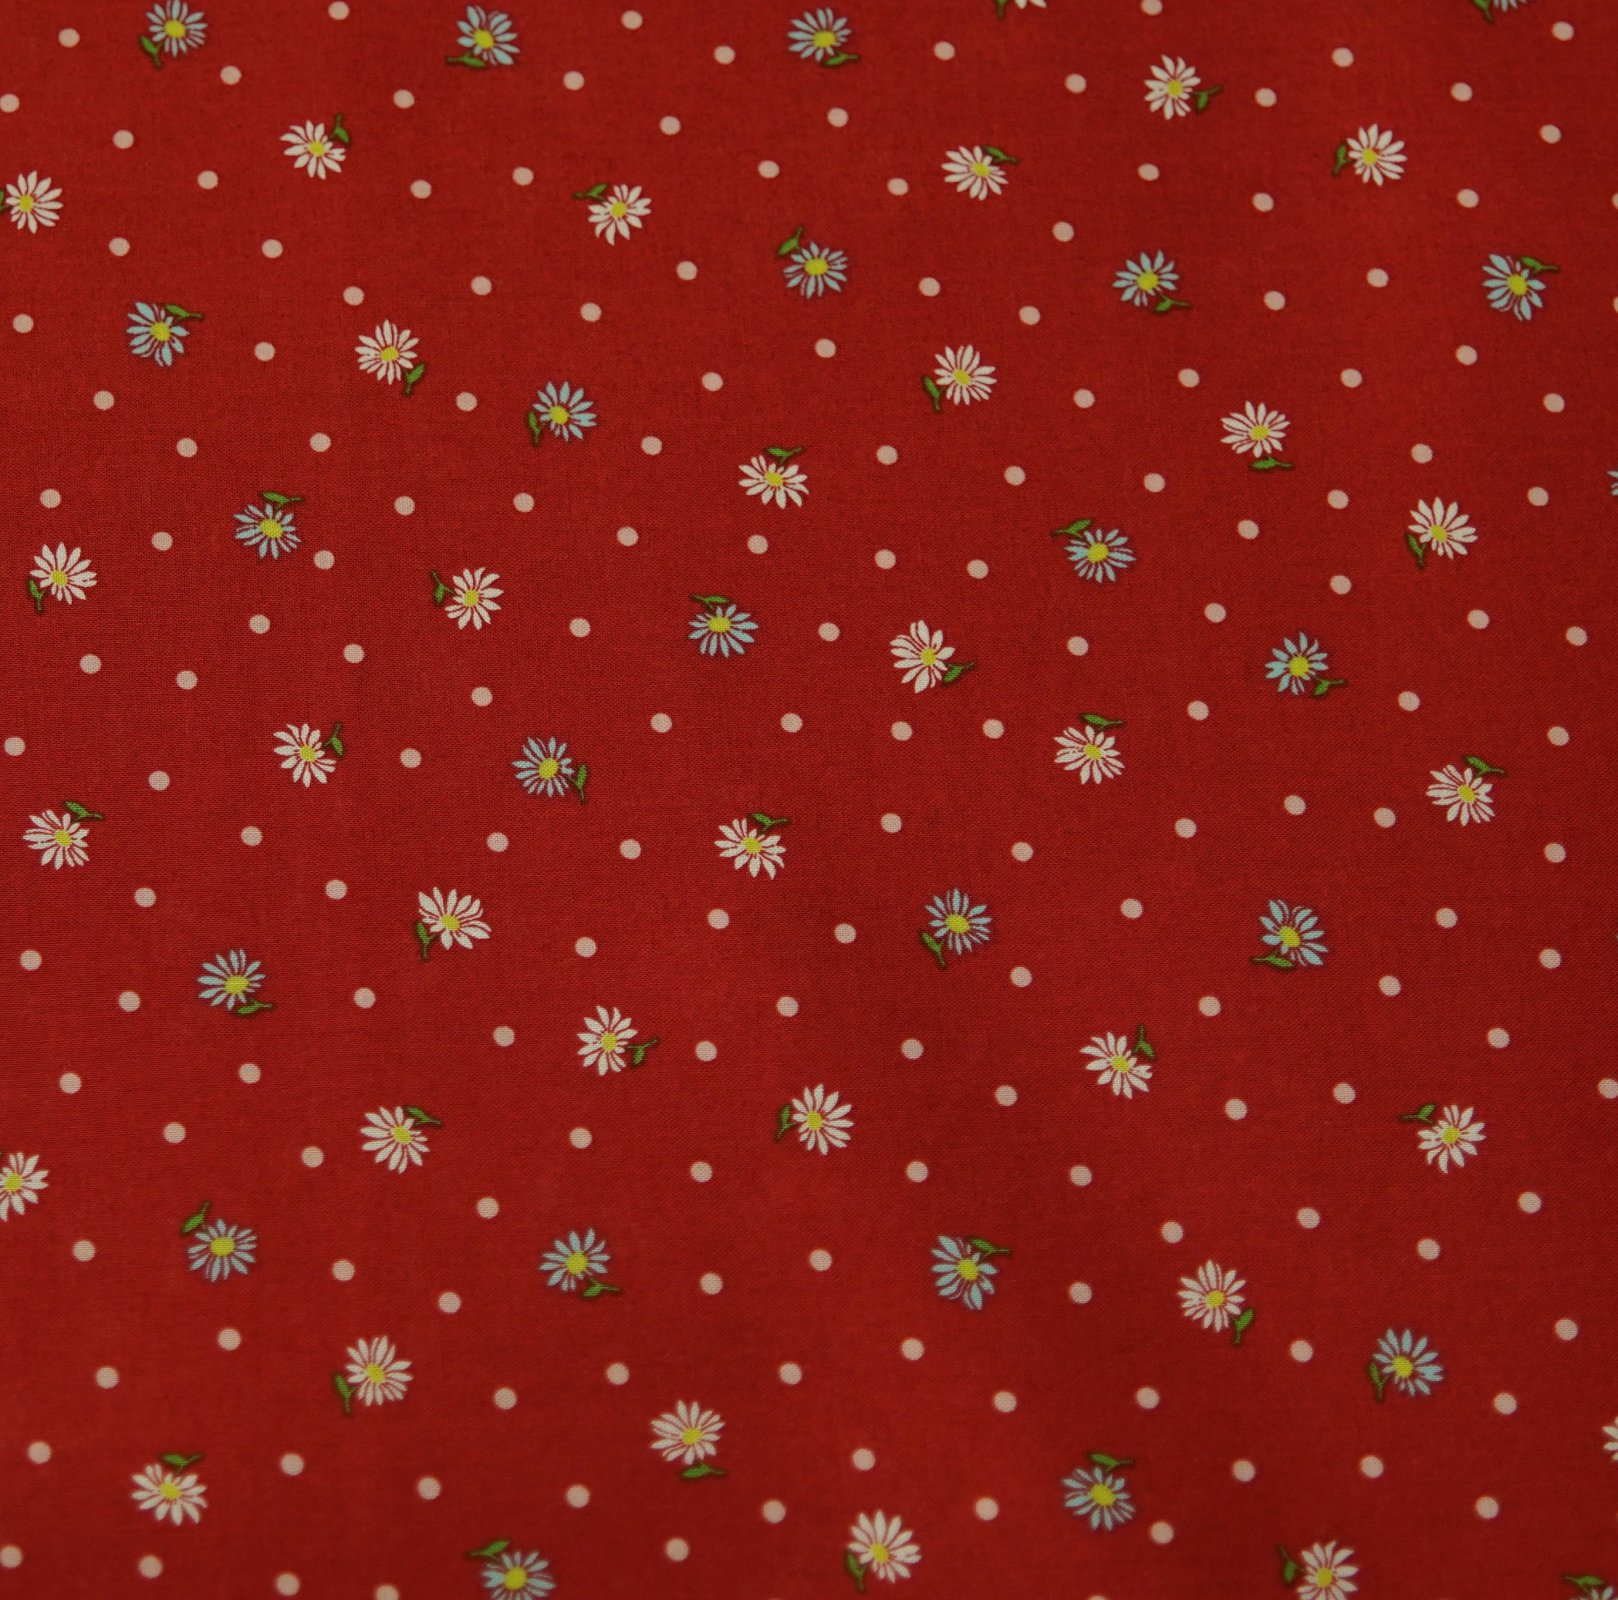 Japanese Fabric - Floral & Spot - Red